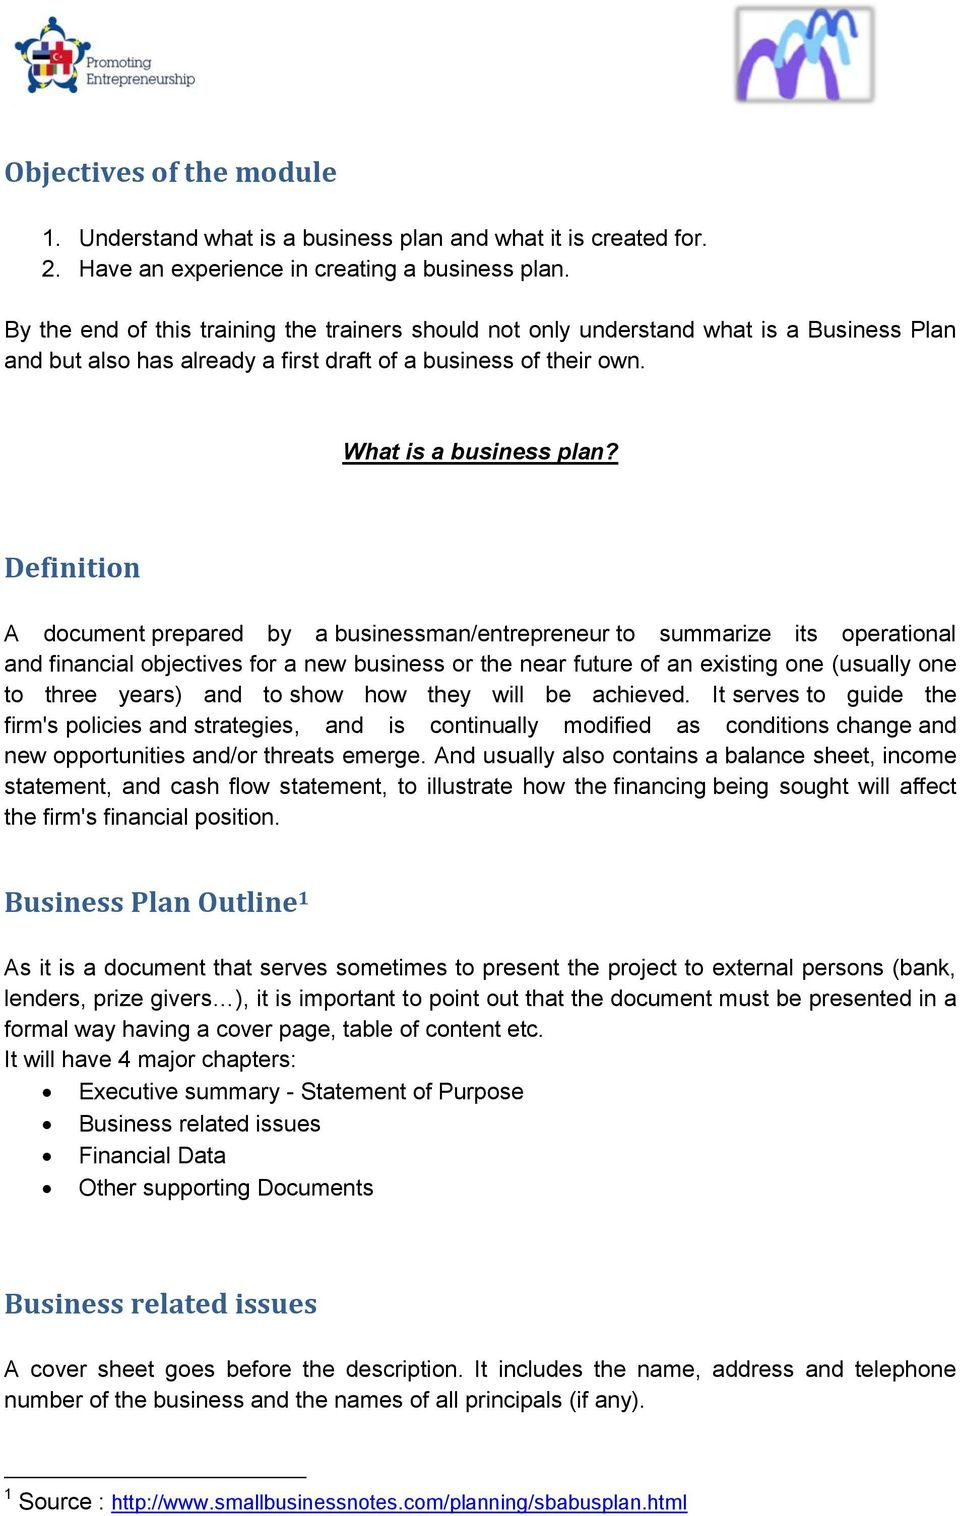 Definition A document prepared by a businessman/entrepreneur to summarize its operational and financial objectives for a new business or the near future of an existing one (usually one to three